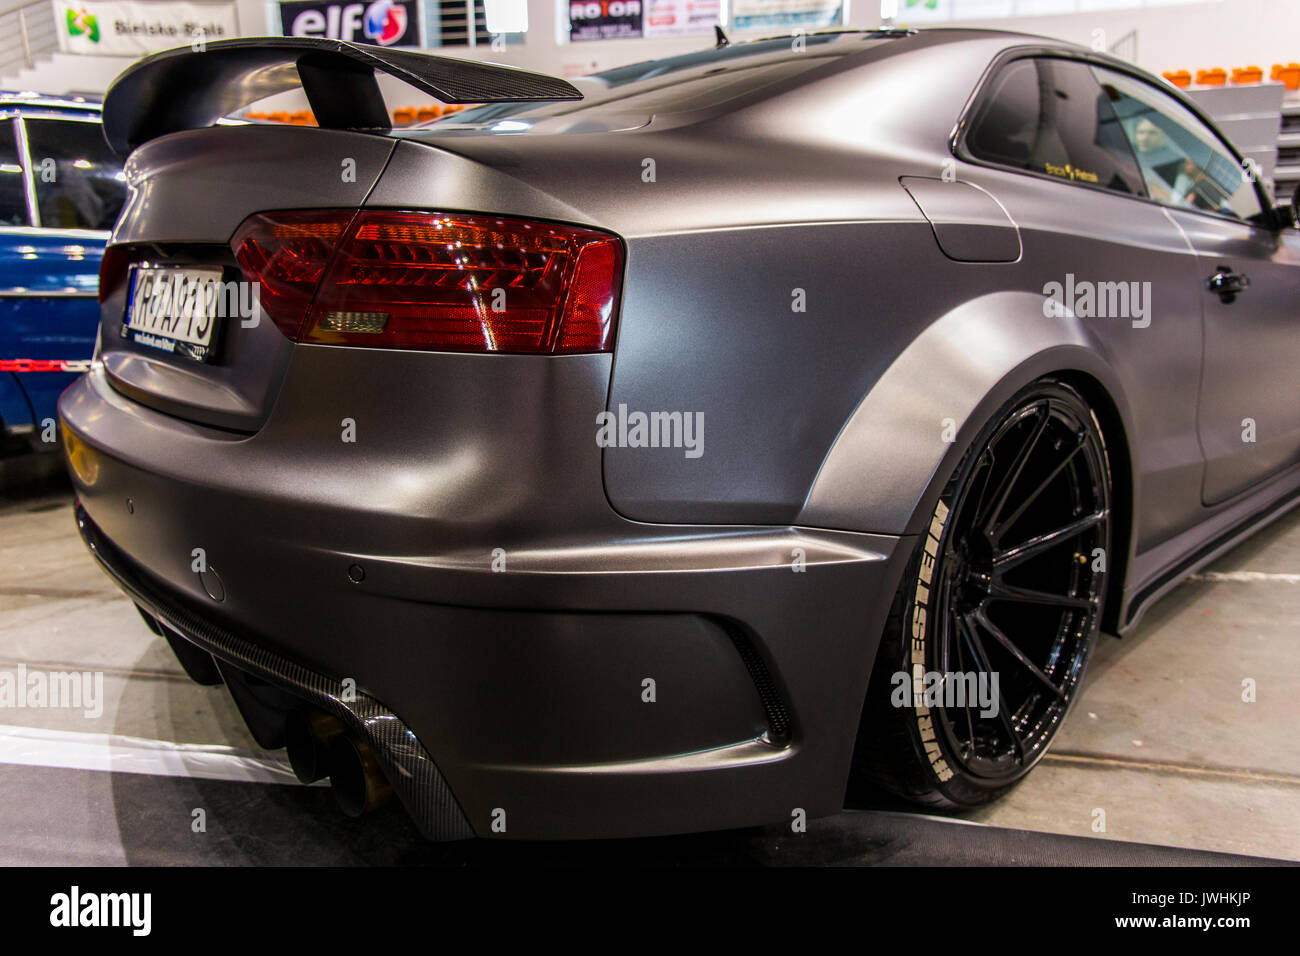 Bielsko-Biala, Poland. 12th Aug, 2017. International automotive trade fairs - MotoShow Bielsko-Biala. Rear view Stock Photo